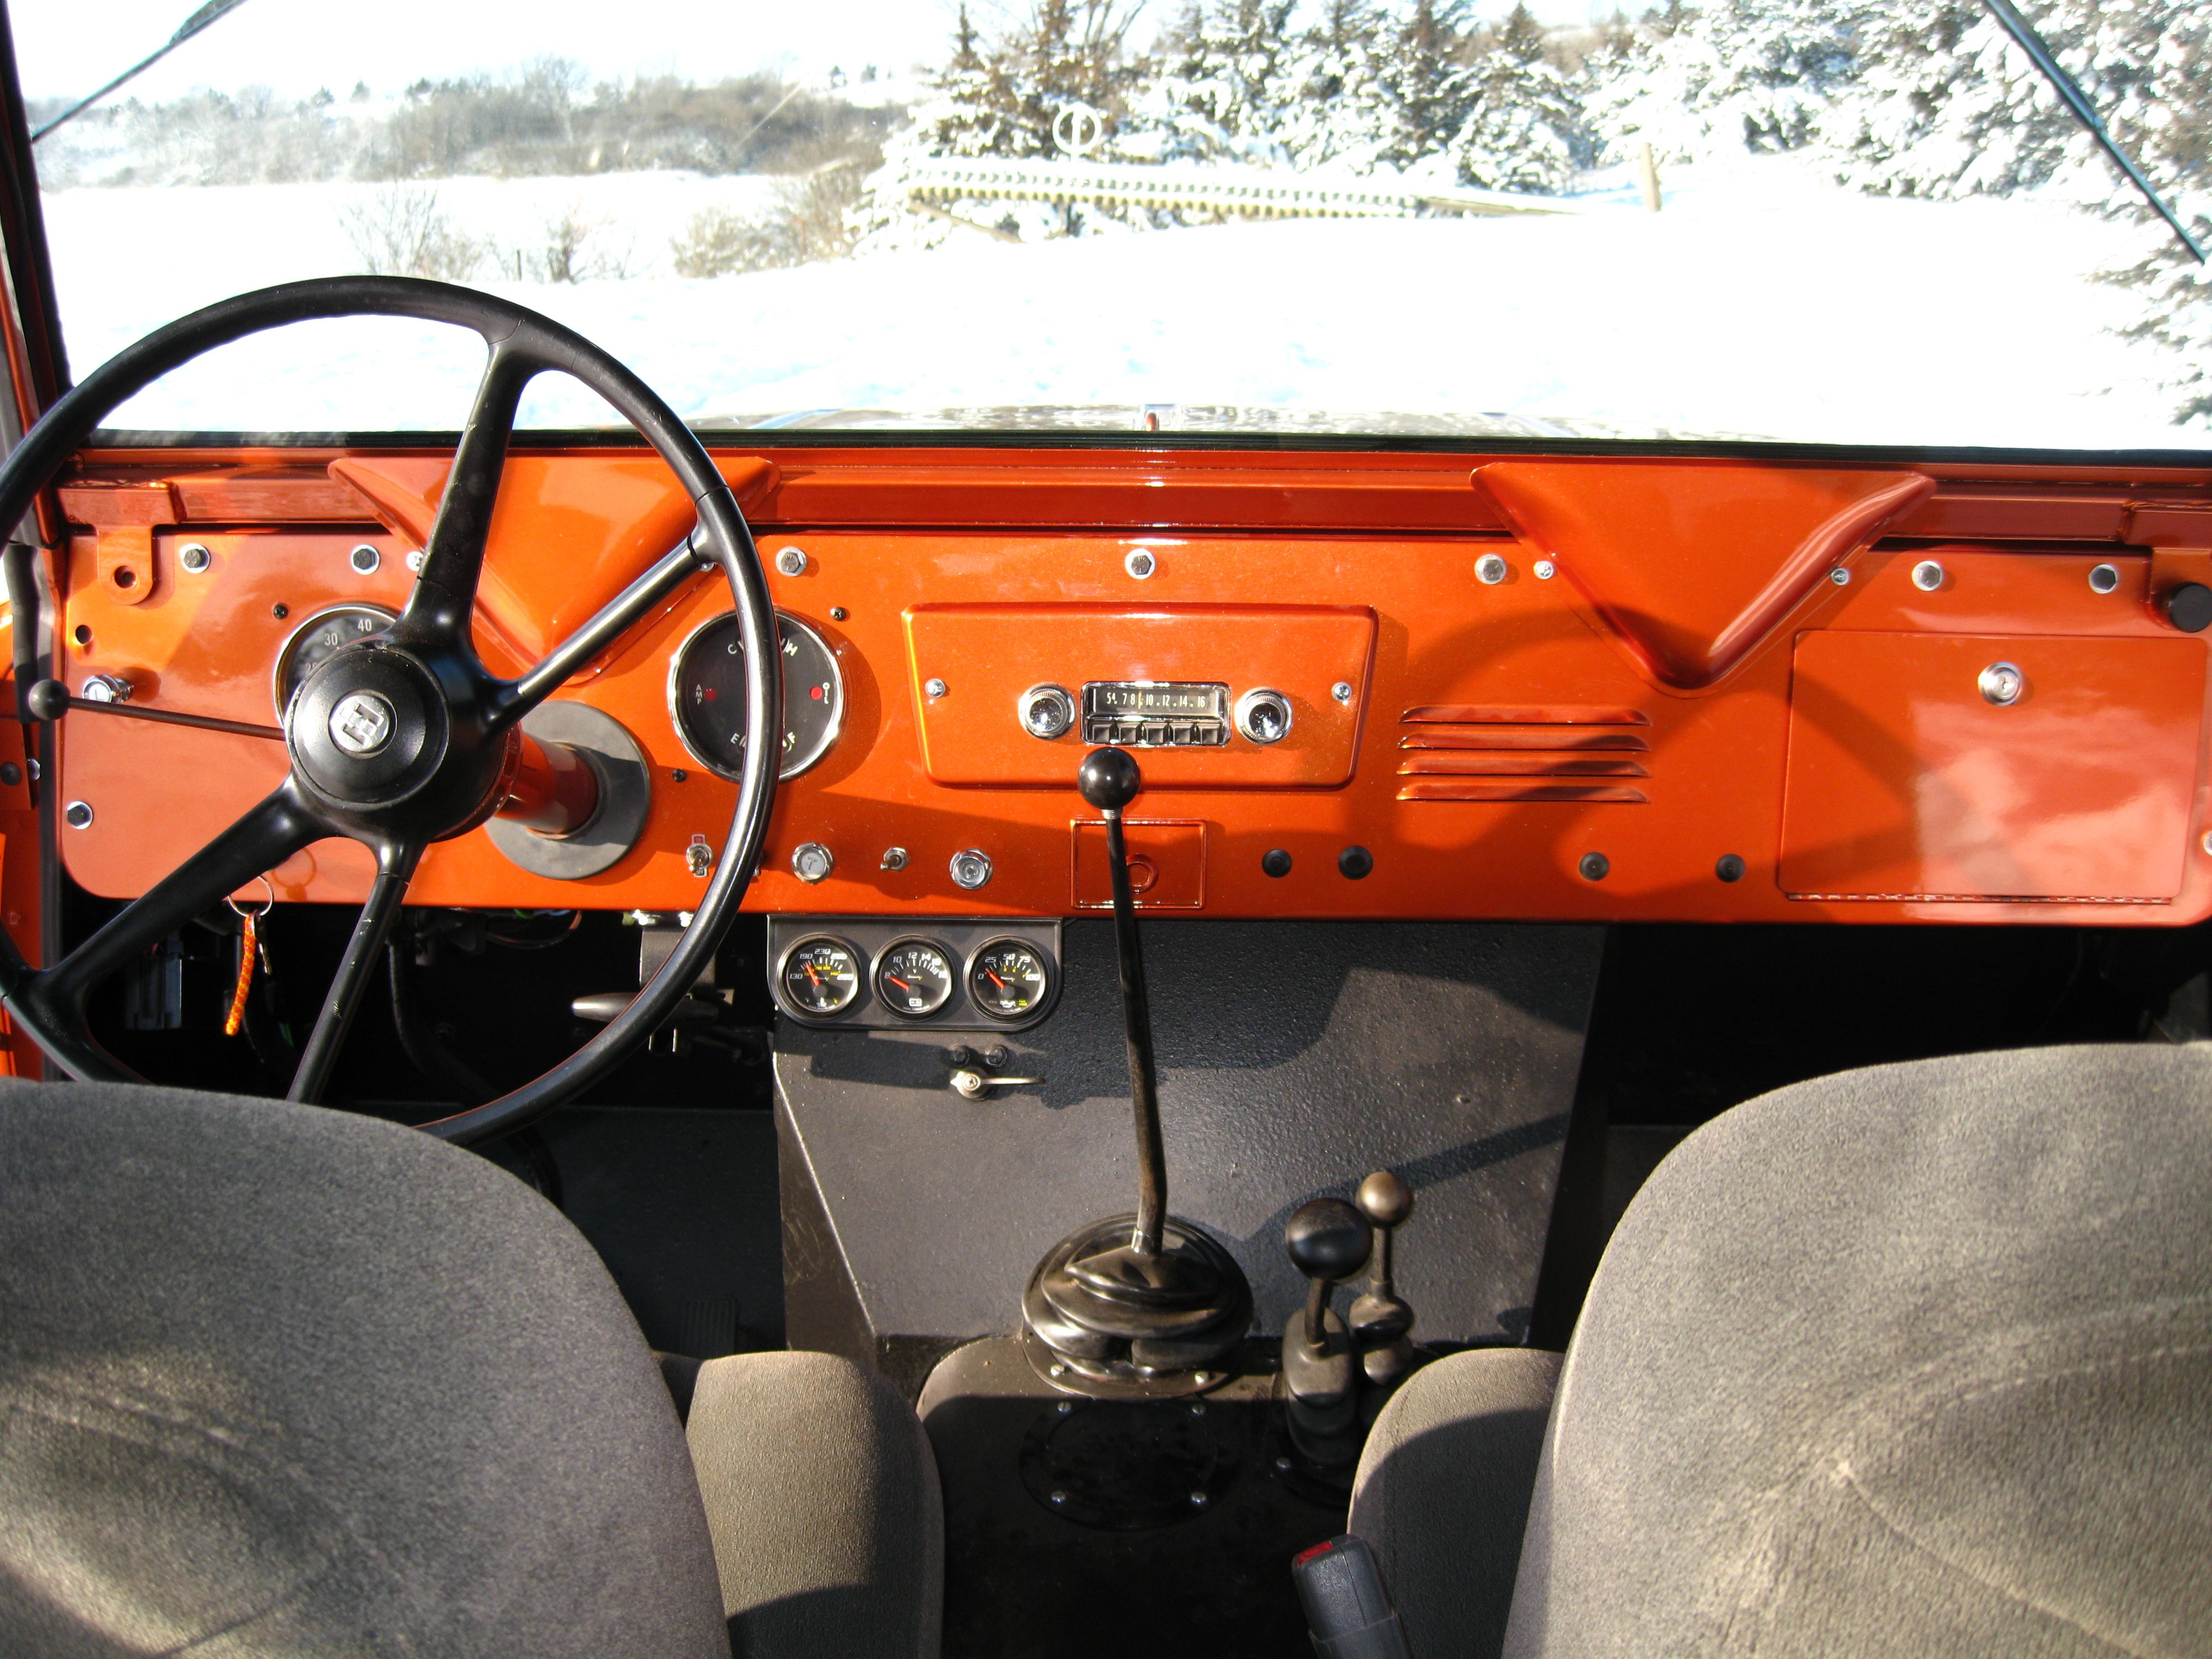 1963 Scout interior Maintenance/restoration of old/vintage vehicles: the  material for new